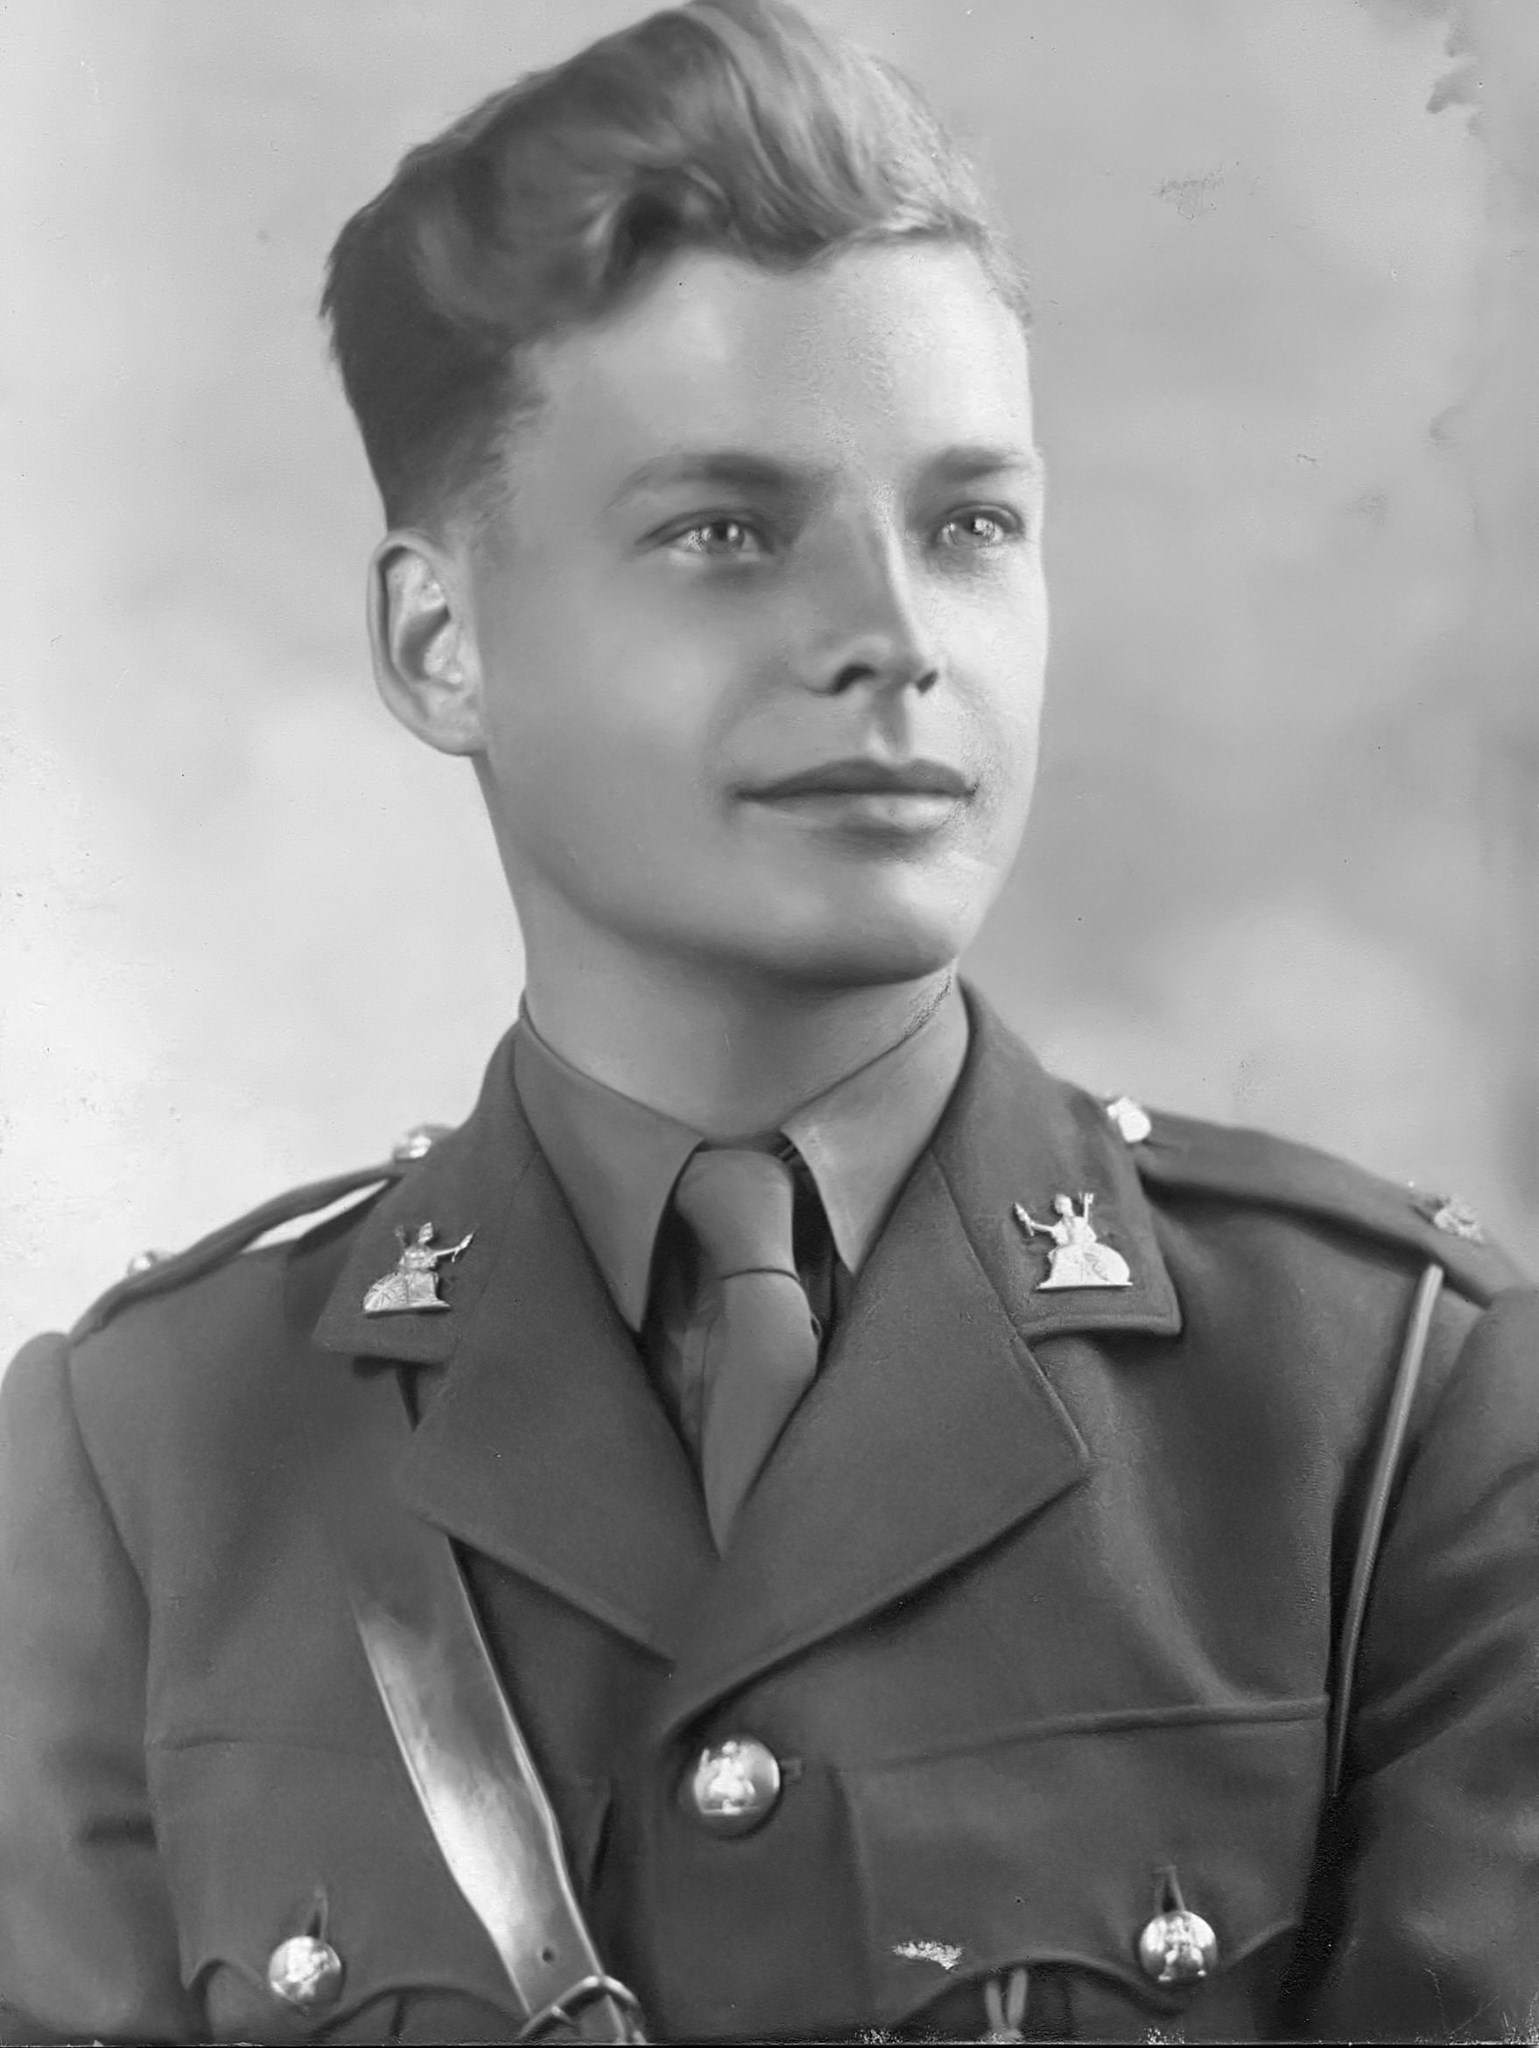 2nd Lieutenant K. W. Lovell Smith